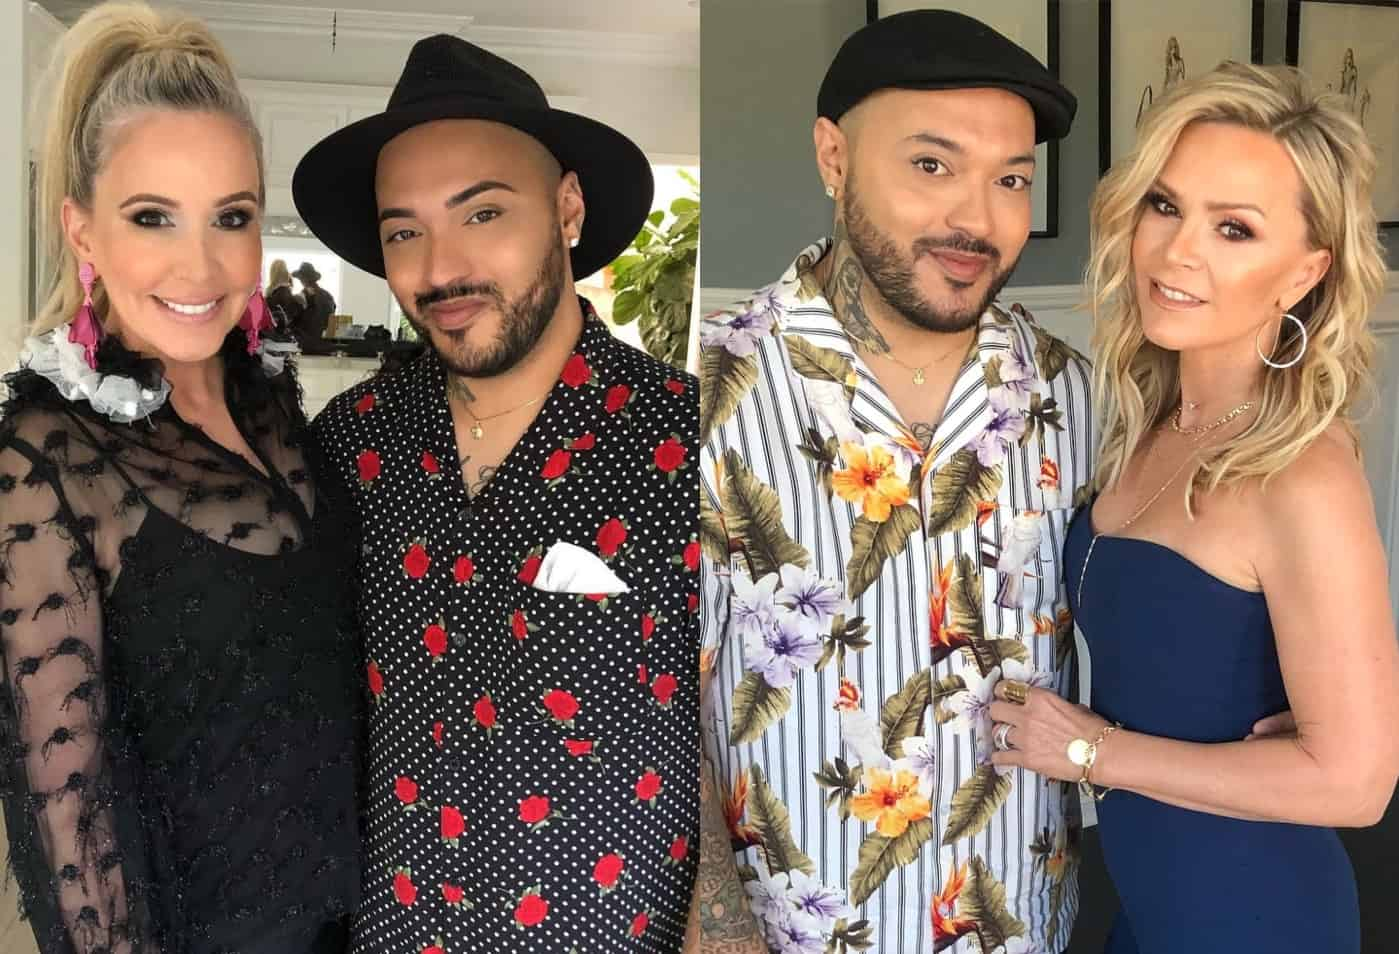 Makeup artist Tommy-William Echaves with Shannon Beador and Tamra Judge